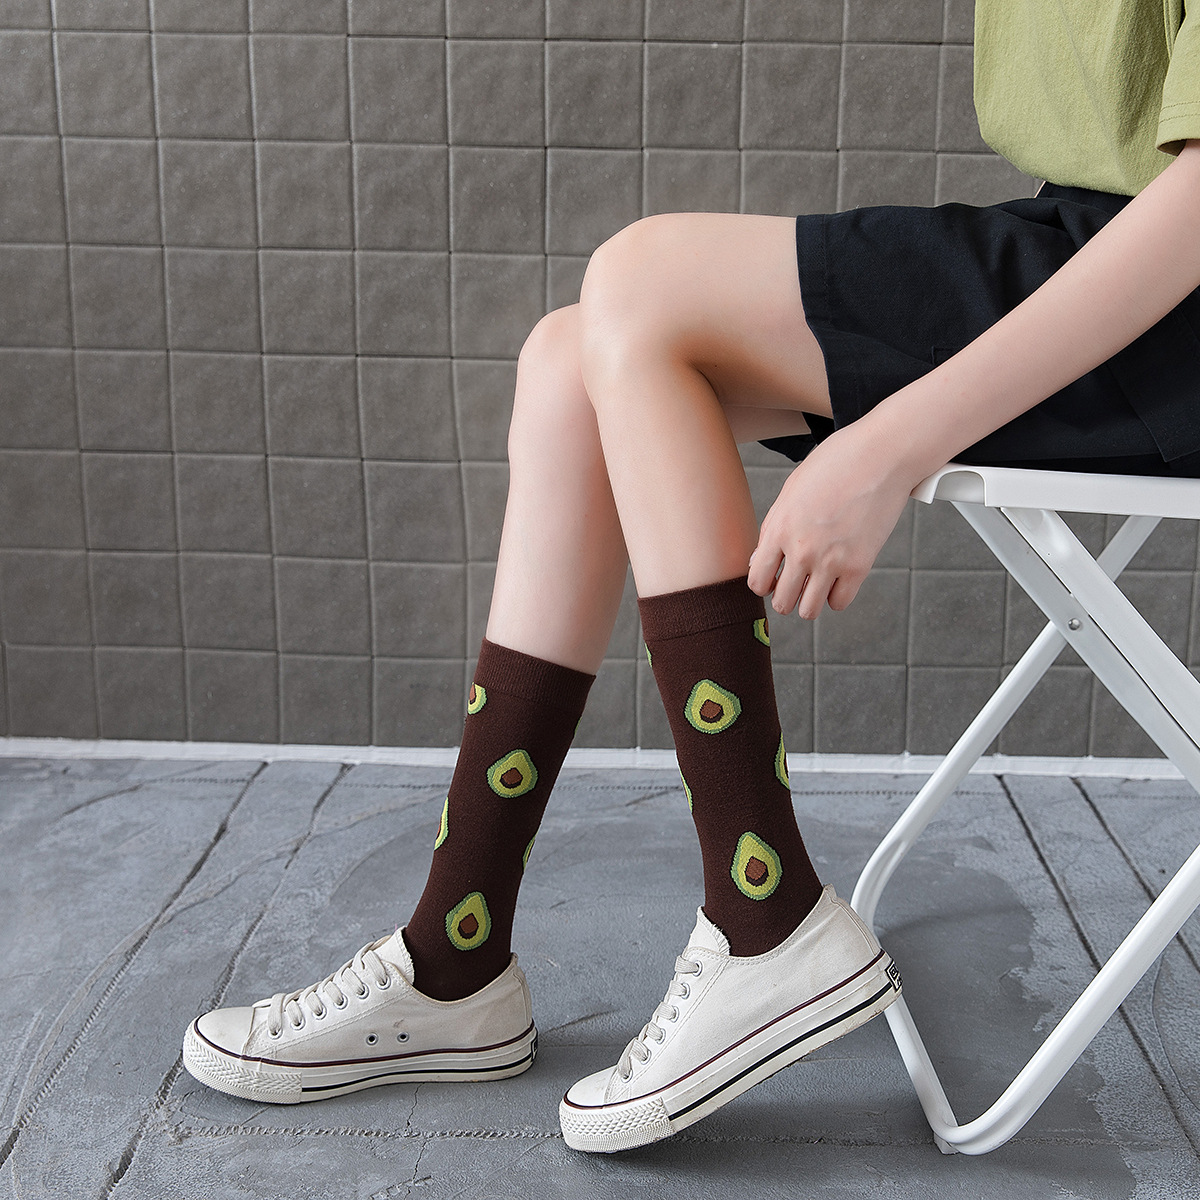 New poached egg fruit avocado cotton socks NHZG145664